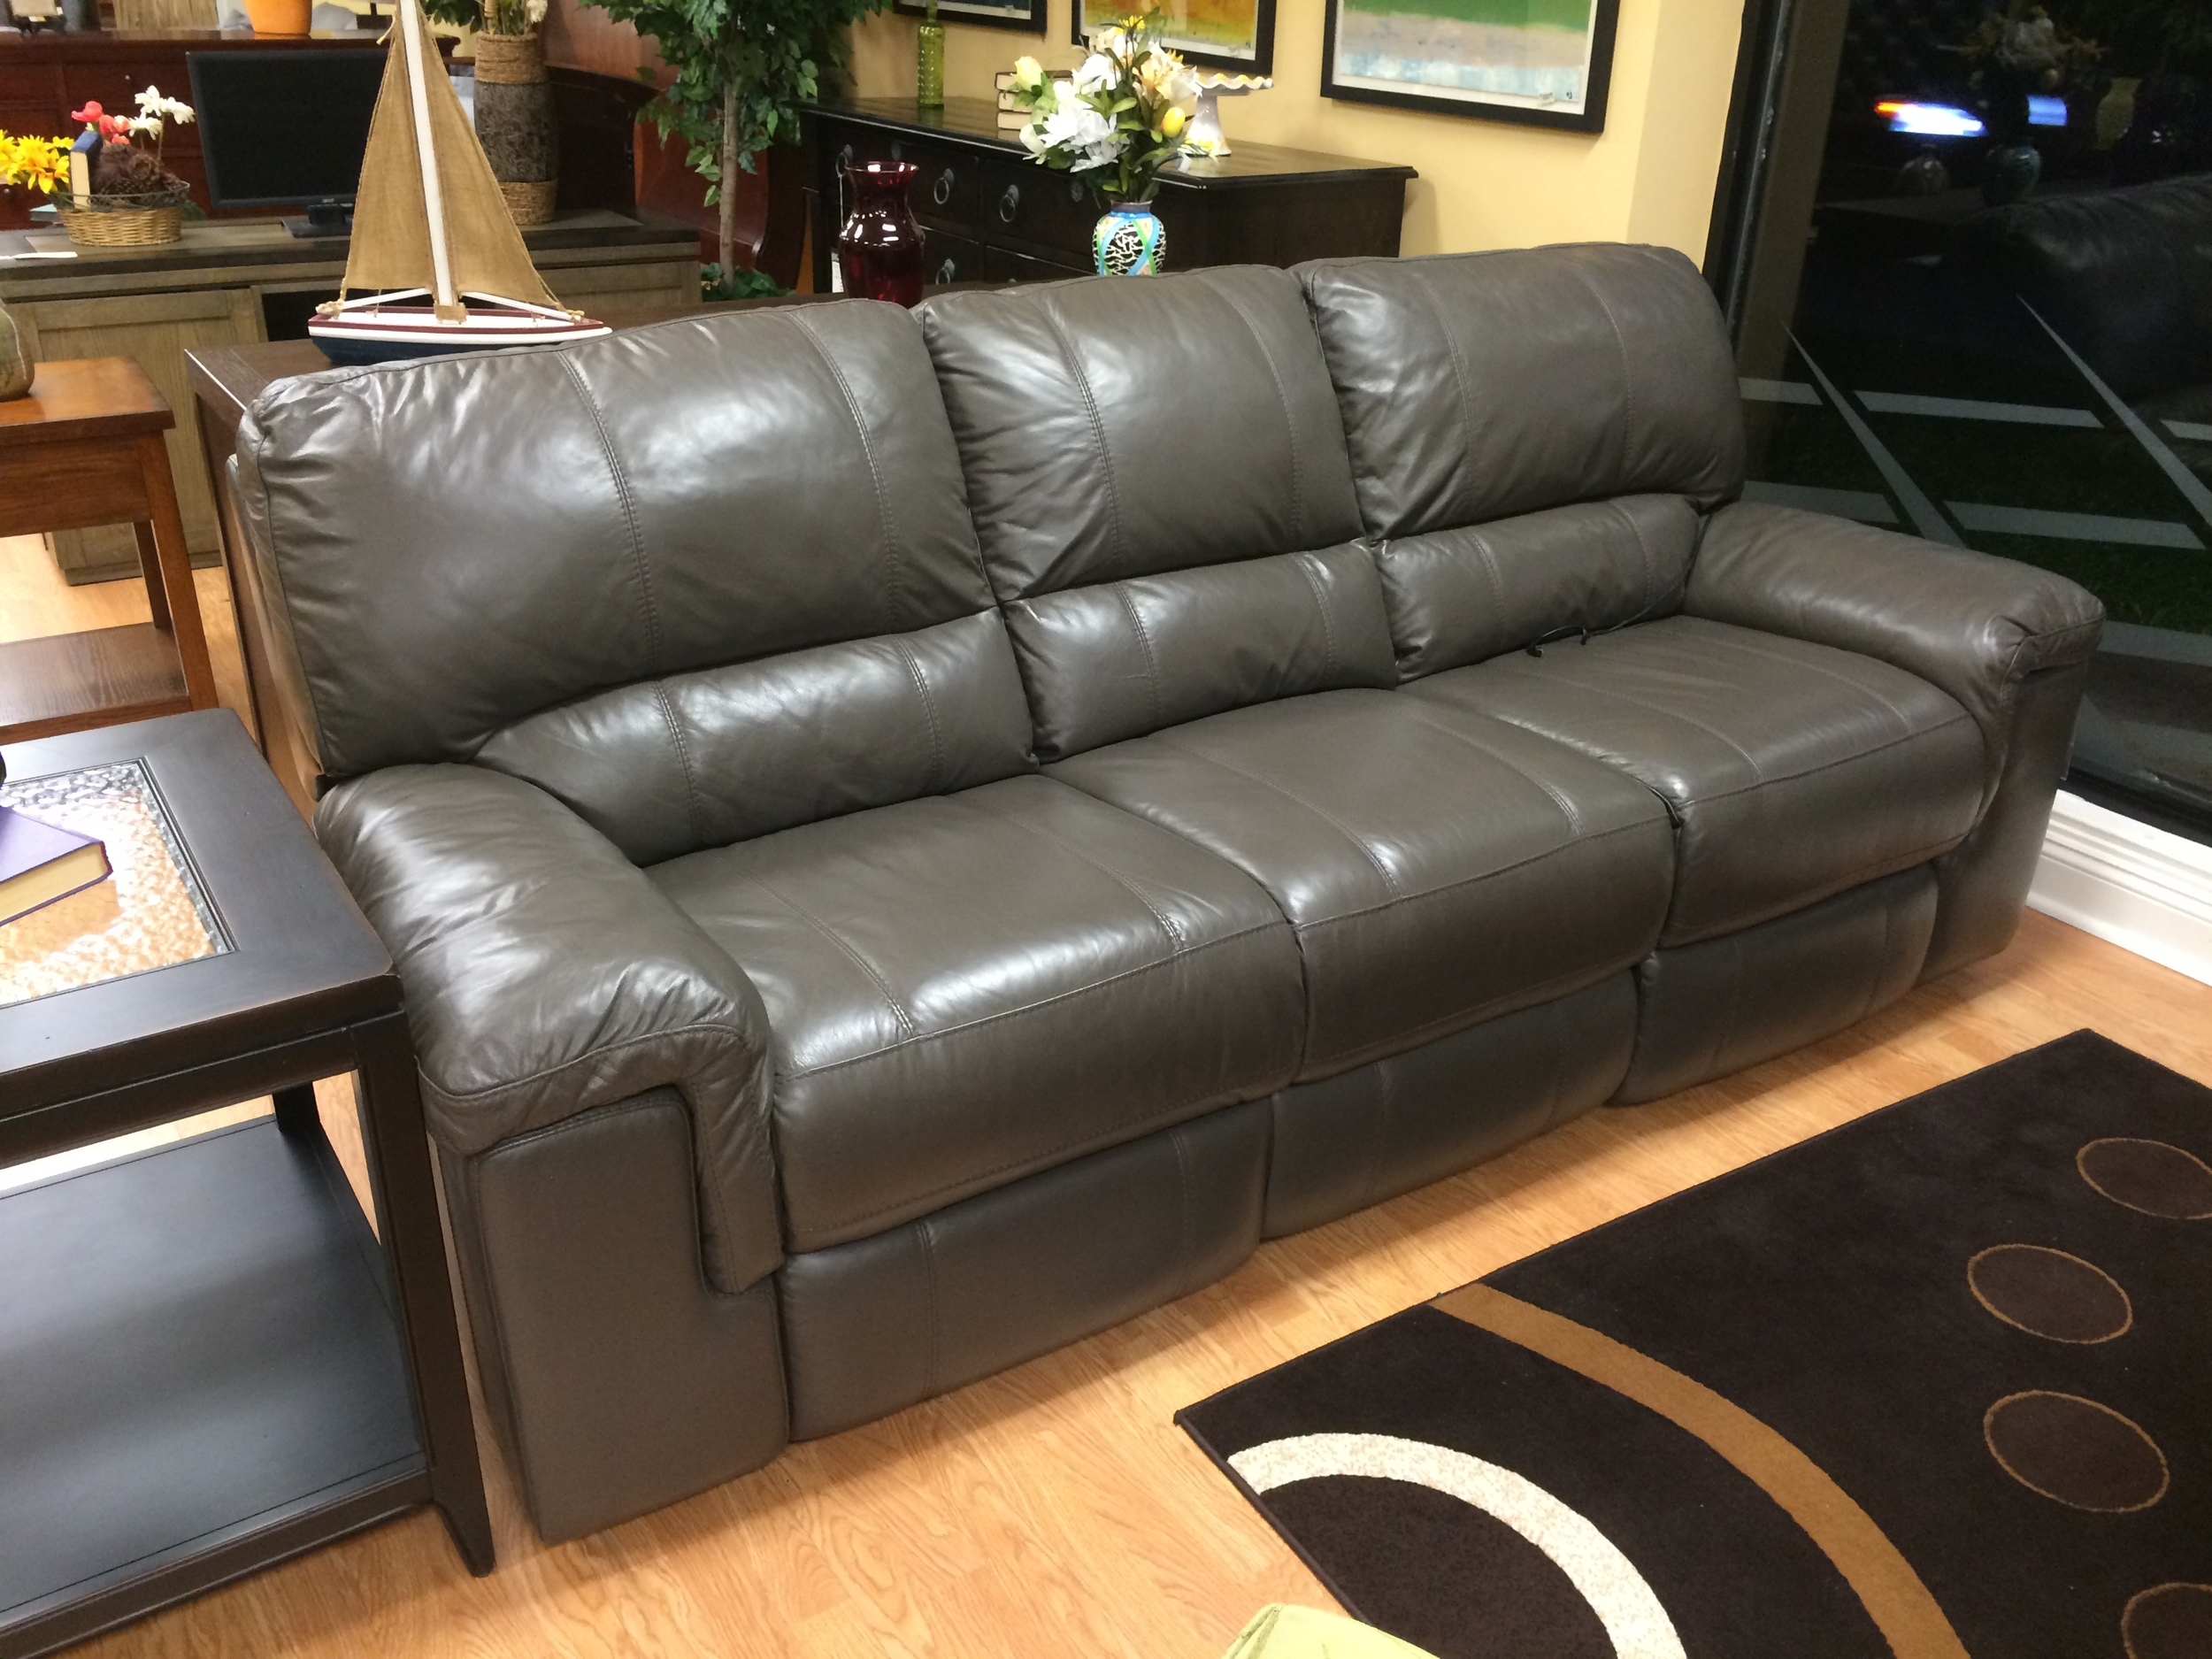 Thomasville Holbrook Gray Leather Motorized Recliner Sofa